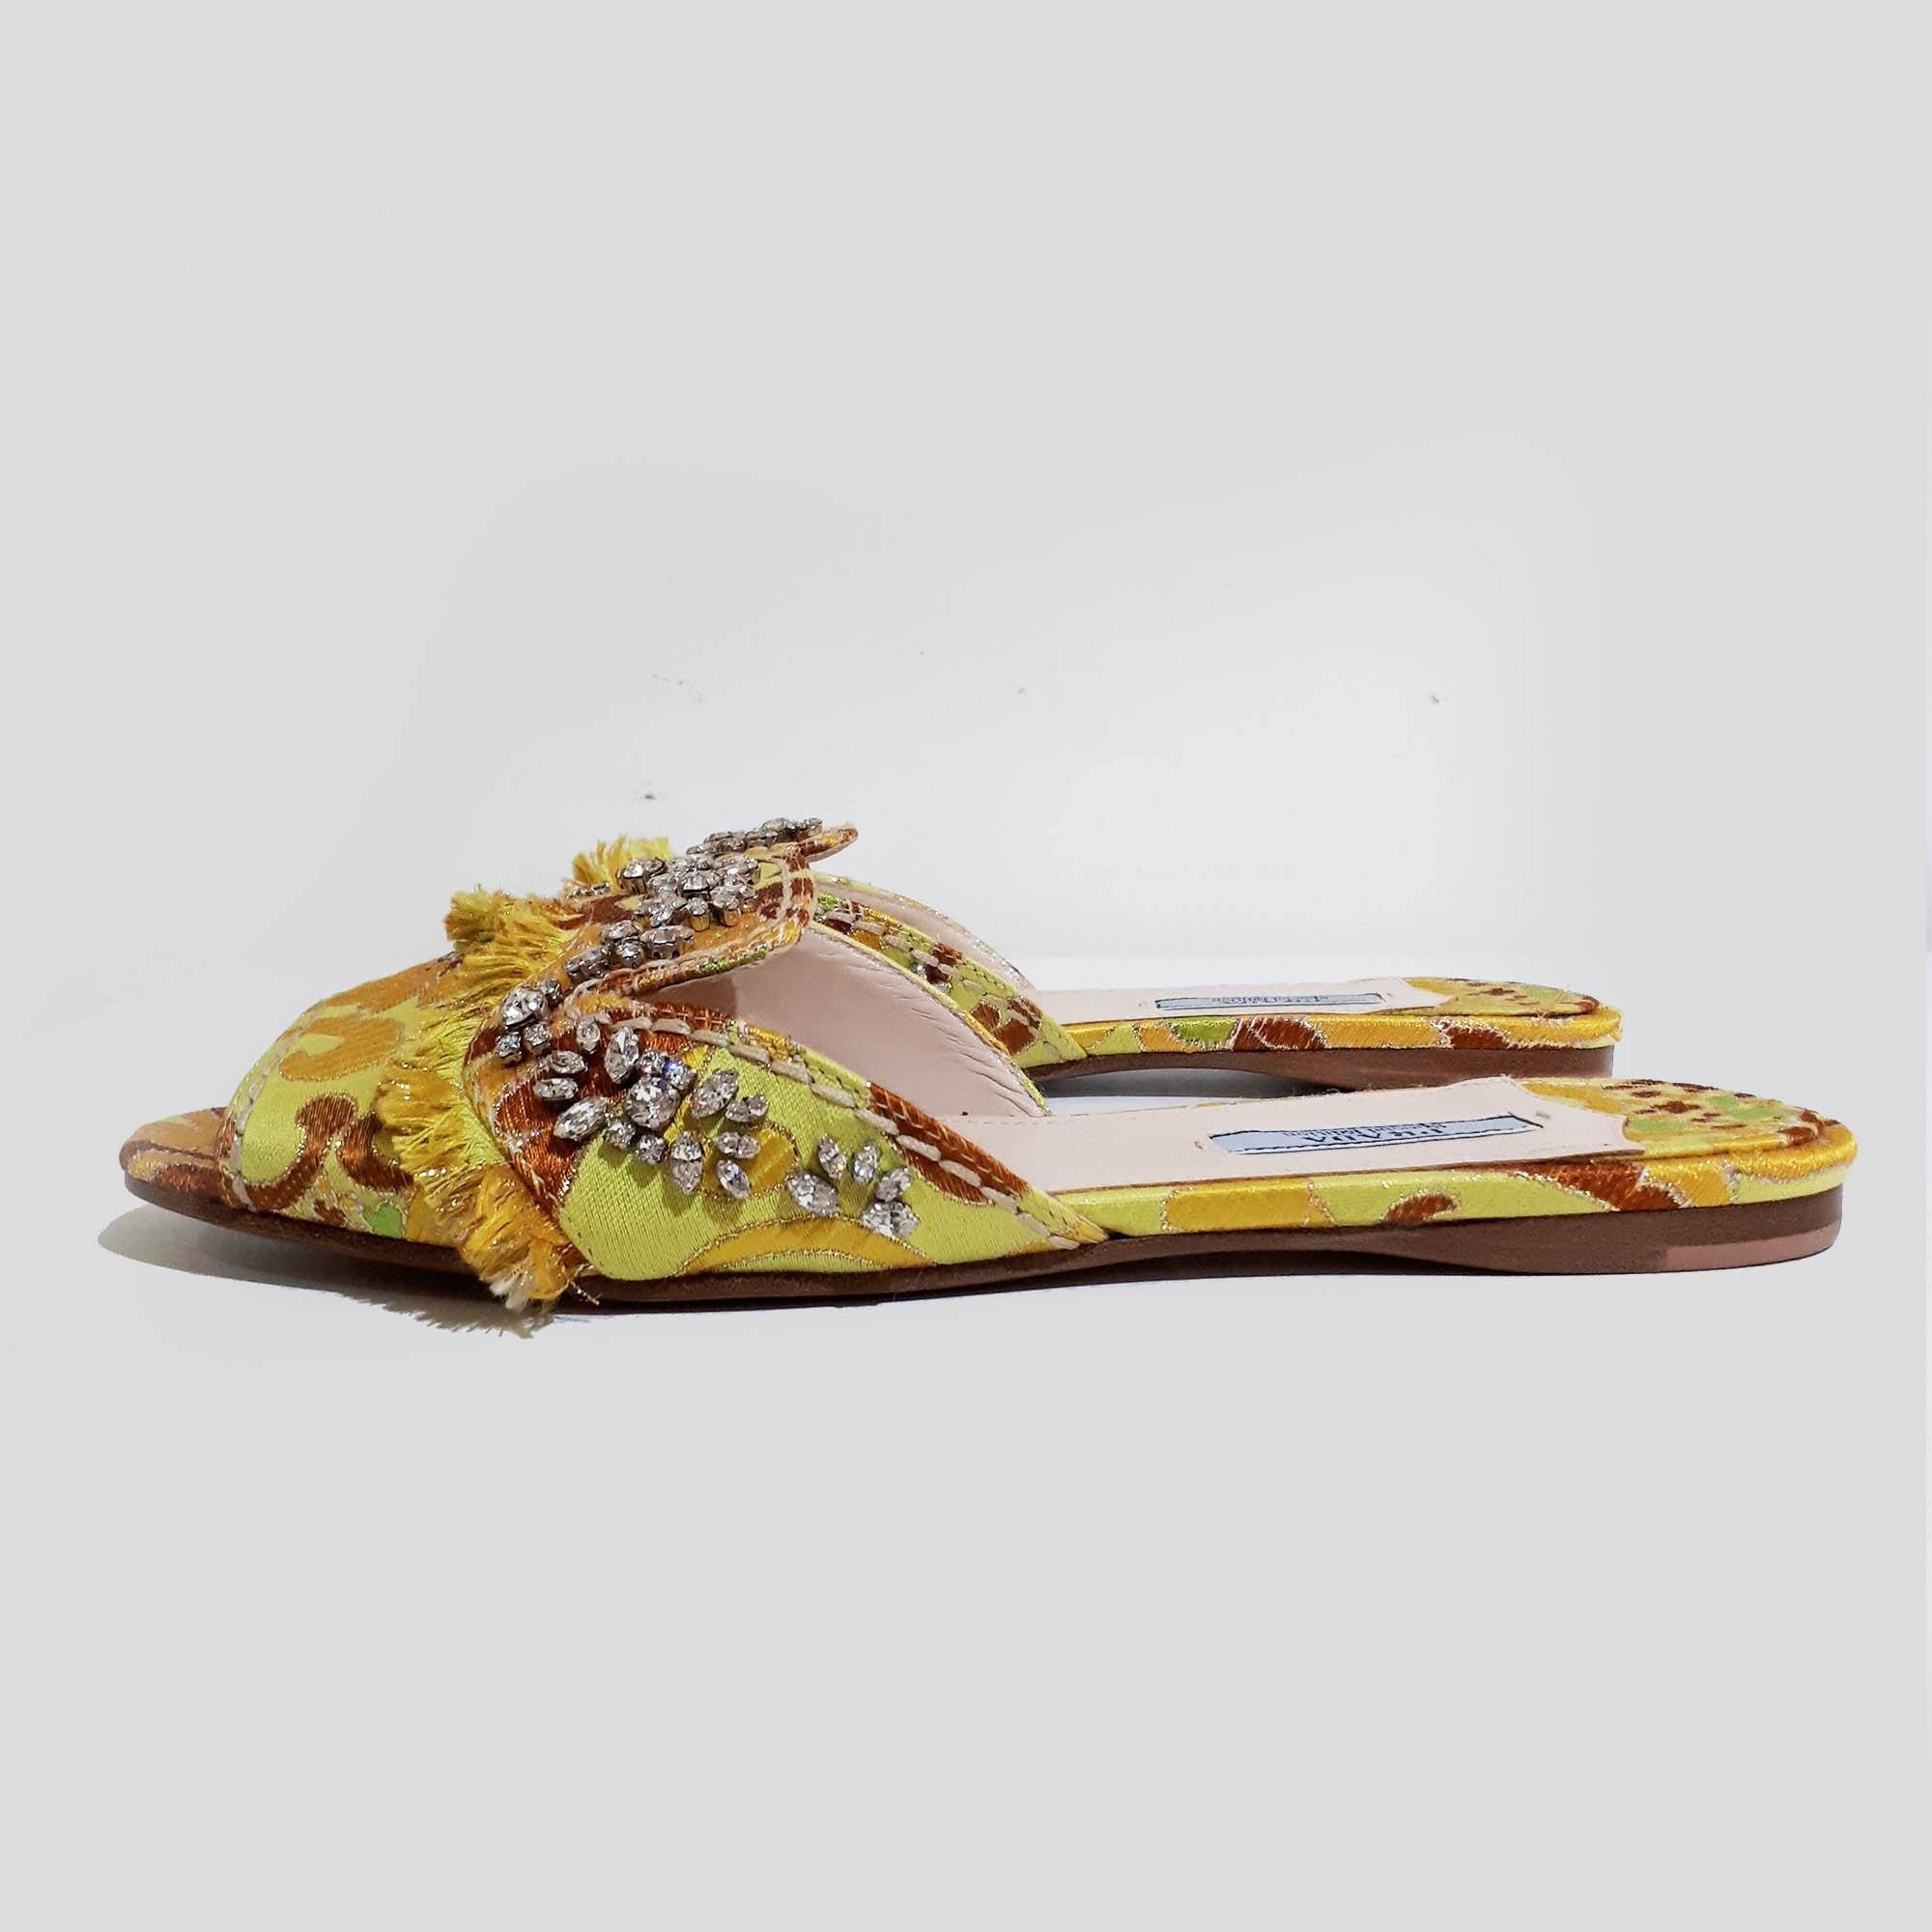 Prada Crystal Embellished Sandals  With Satin Embroidery Details